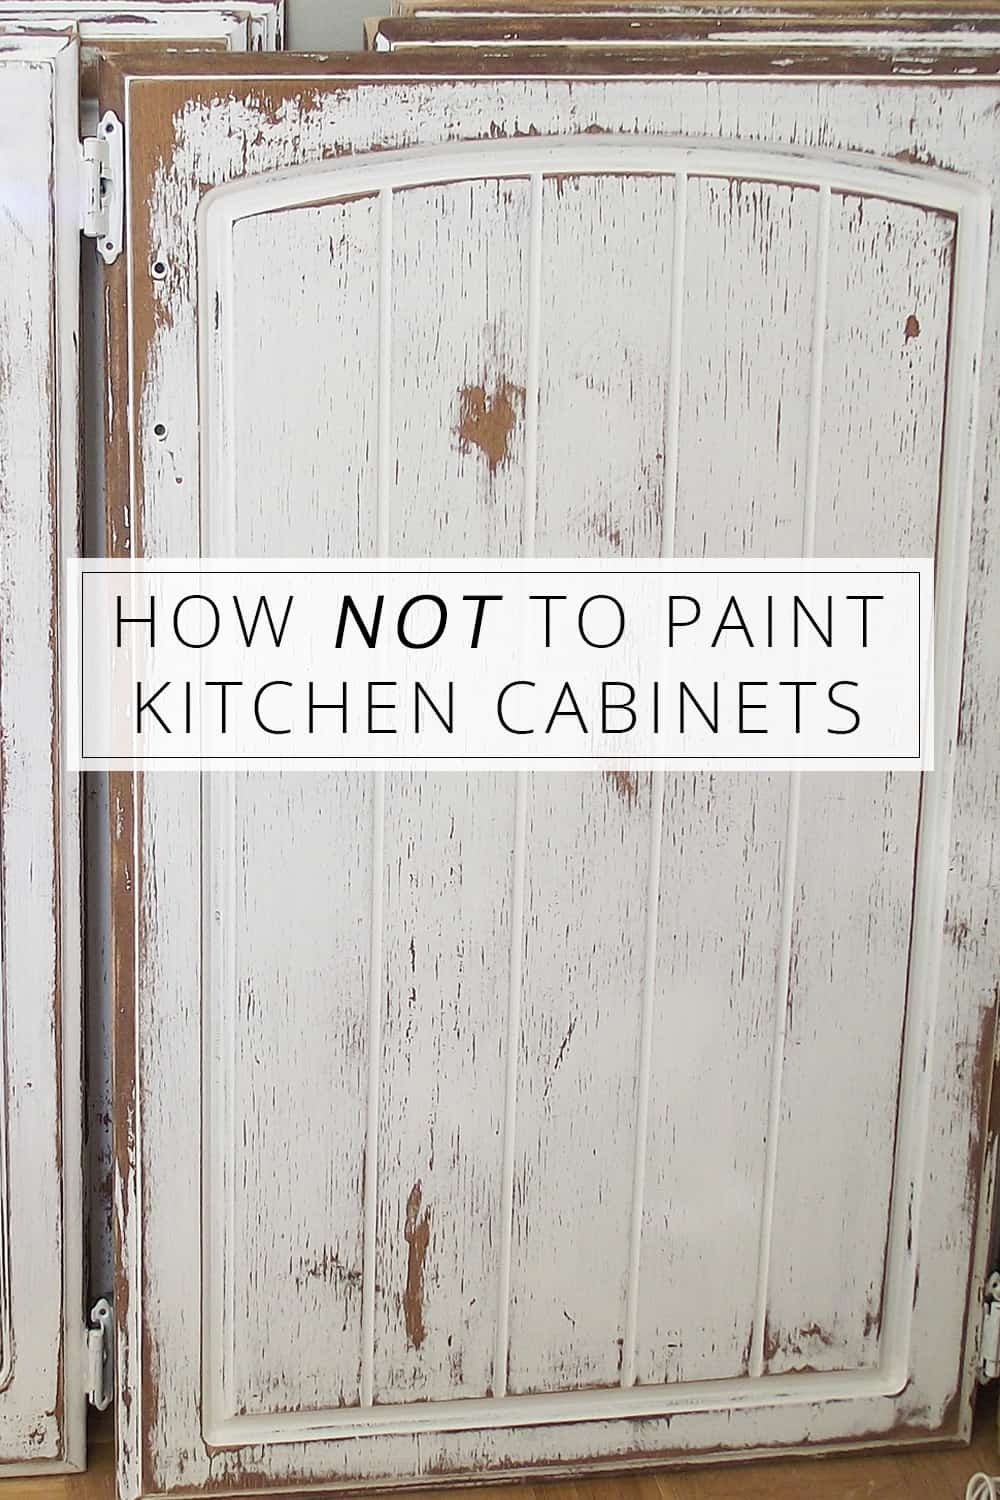 How not to paint kitchen cabinets